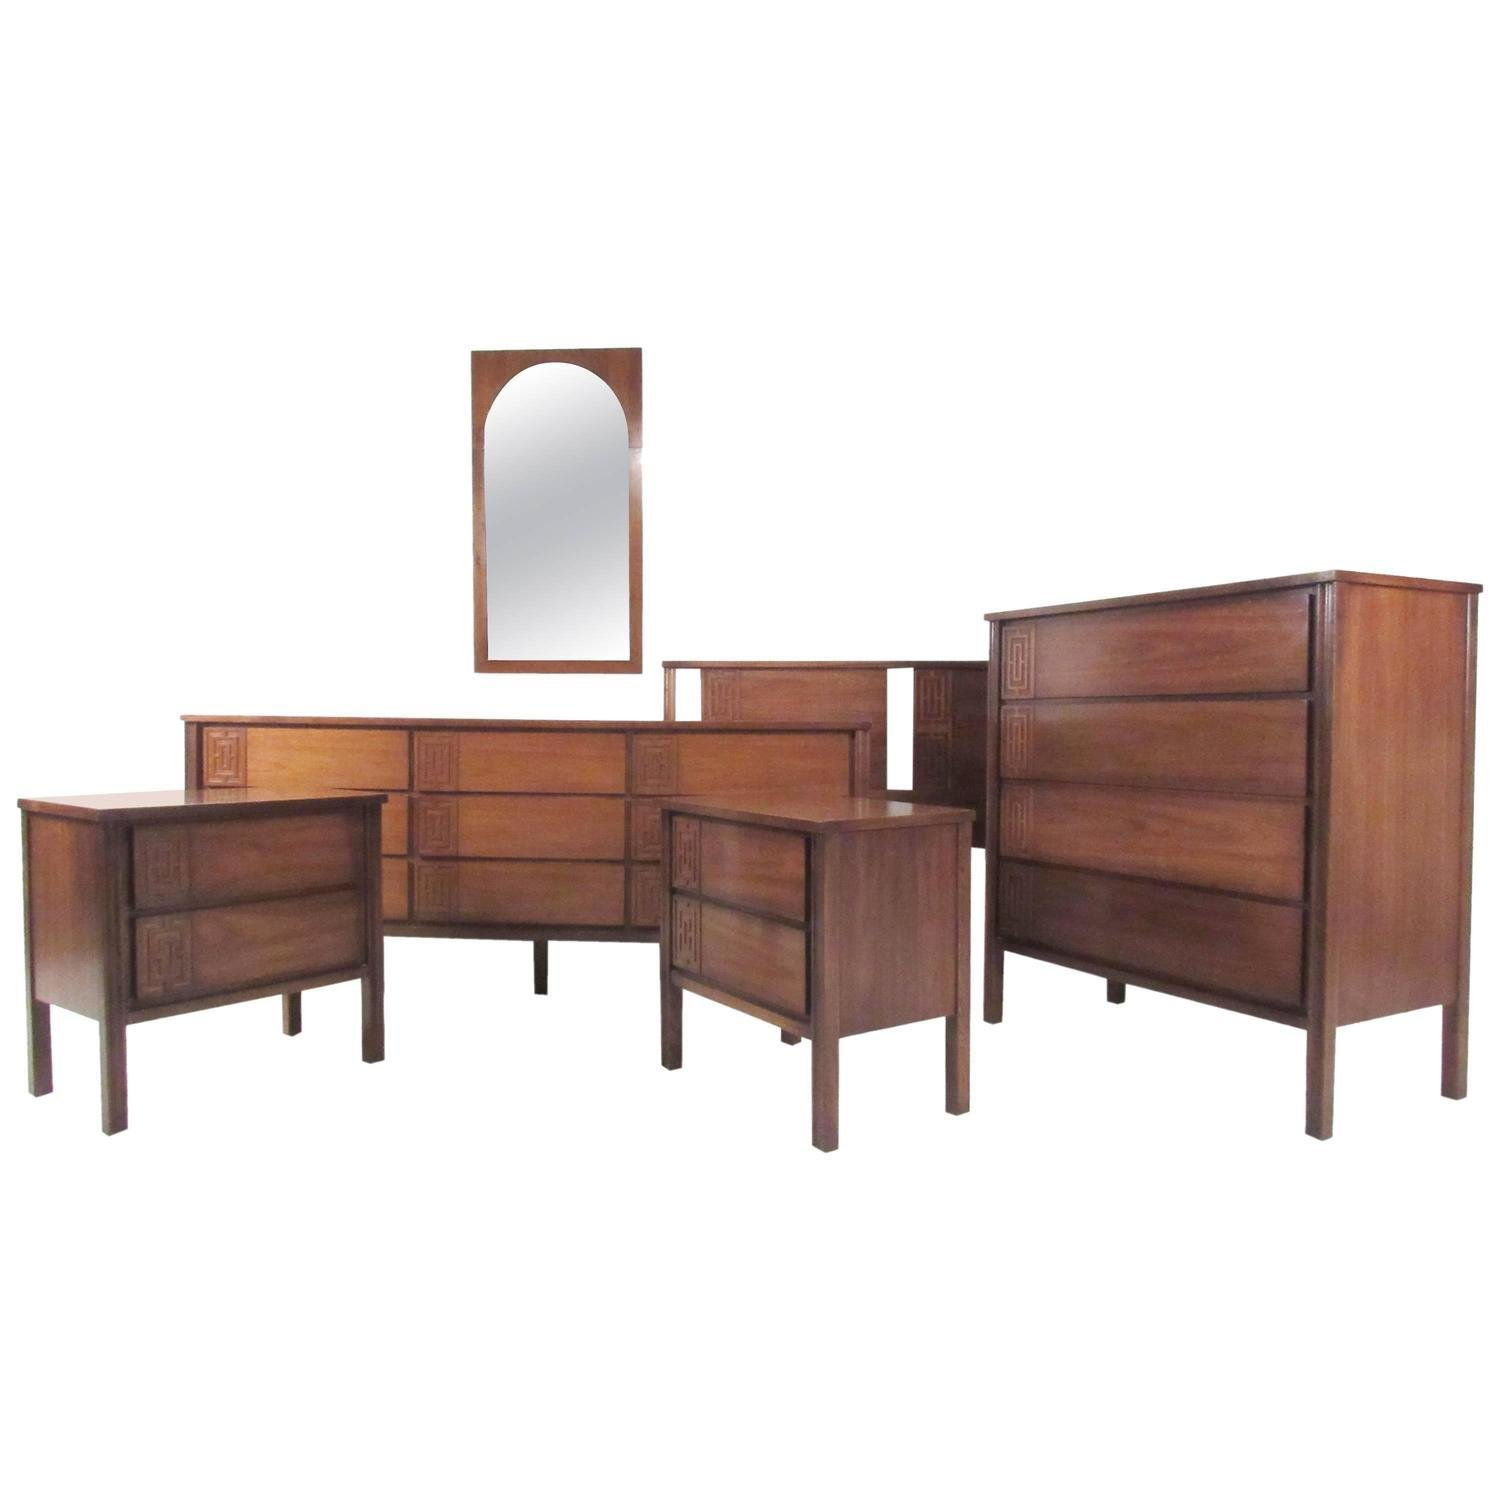 Best Stylish Mid Century Modern Seven Piece Bedroom Set For With Pictures